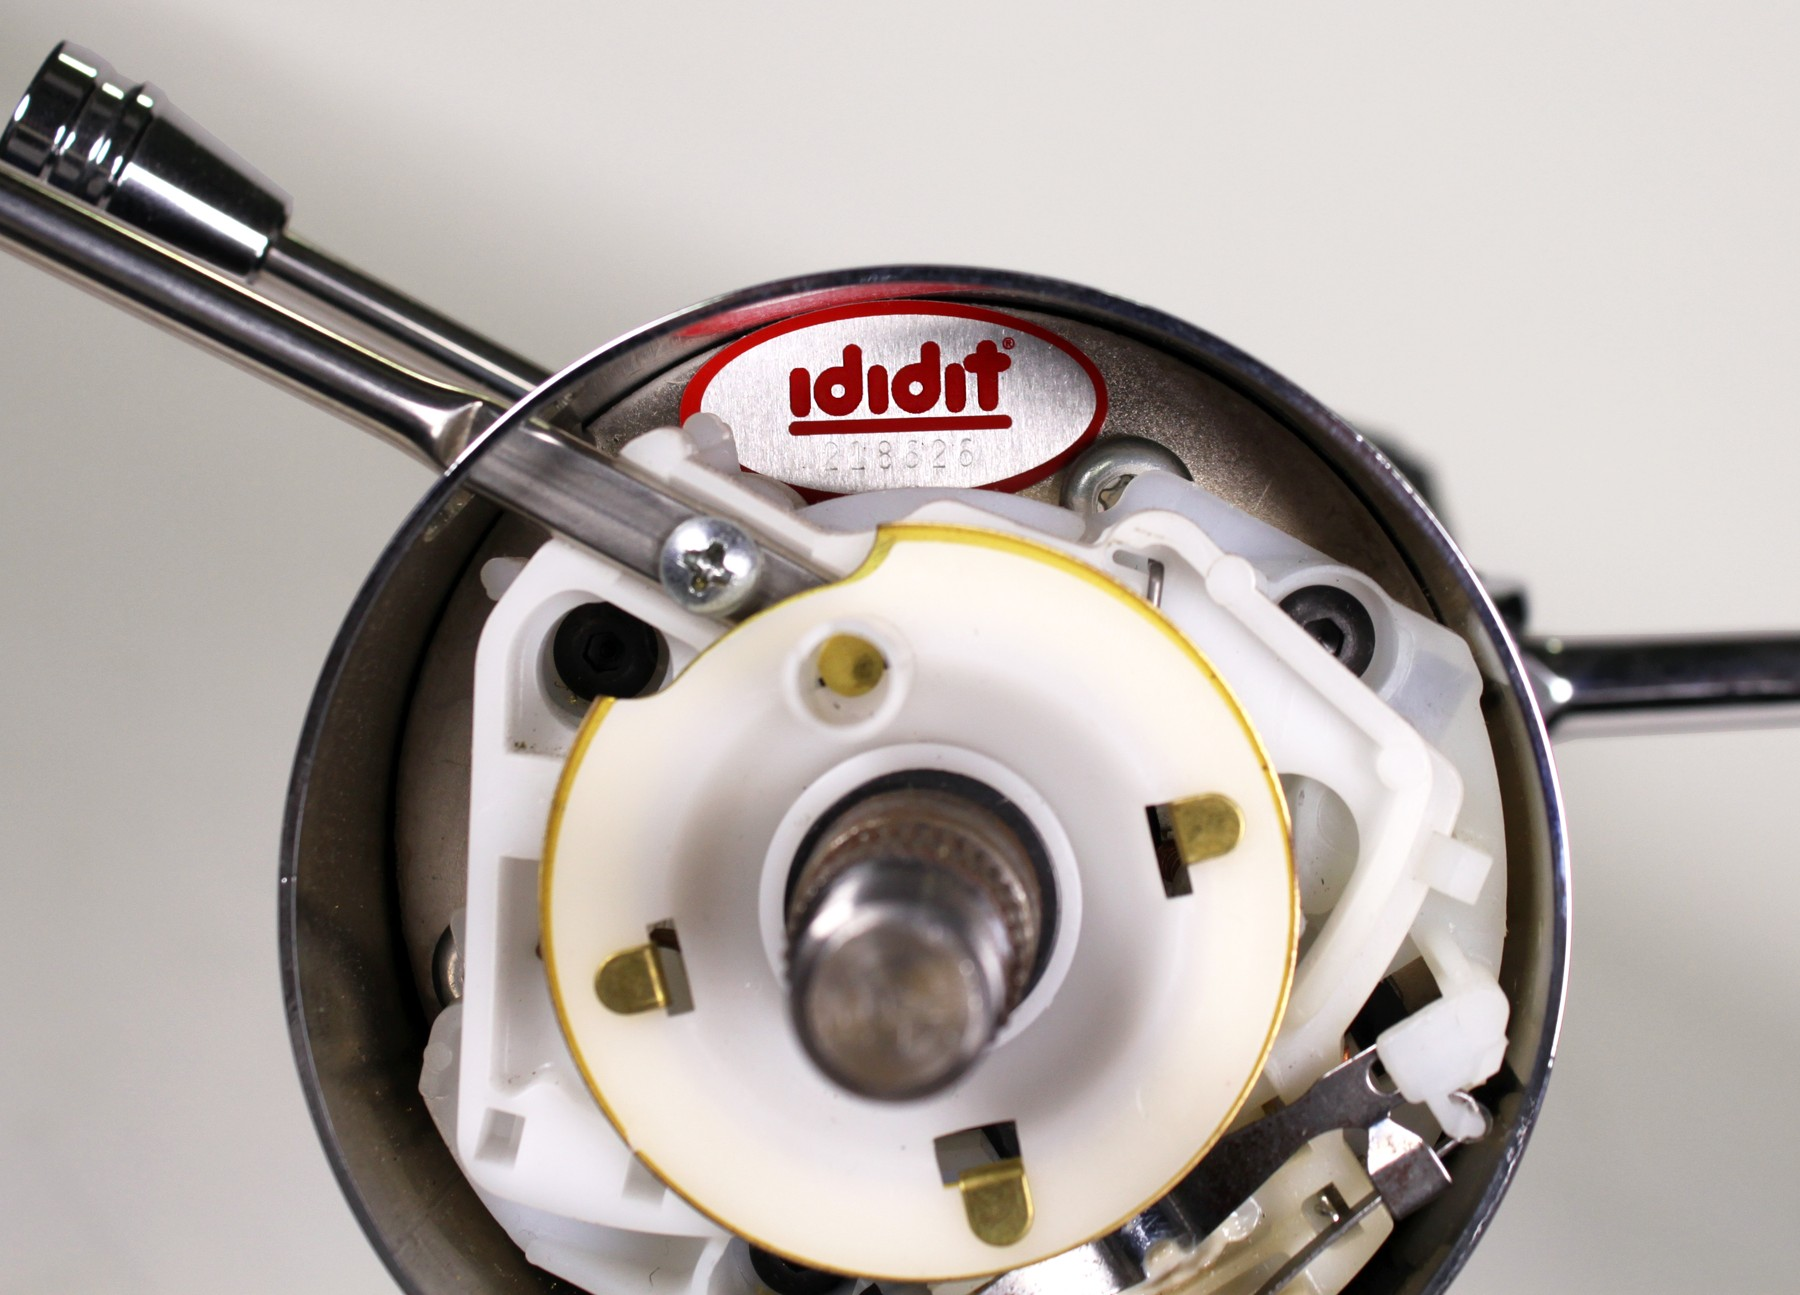 Q How to find the serial number on an ididit steering column